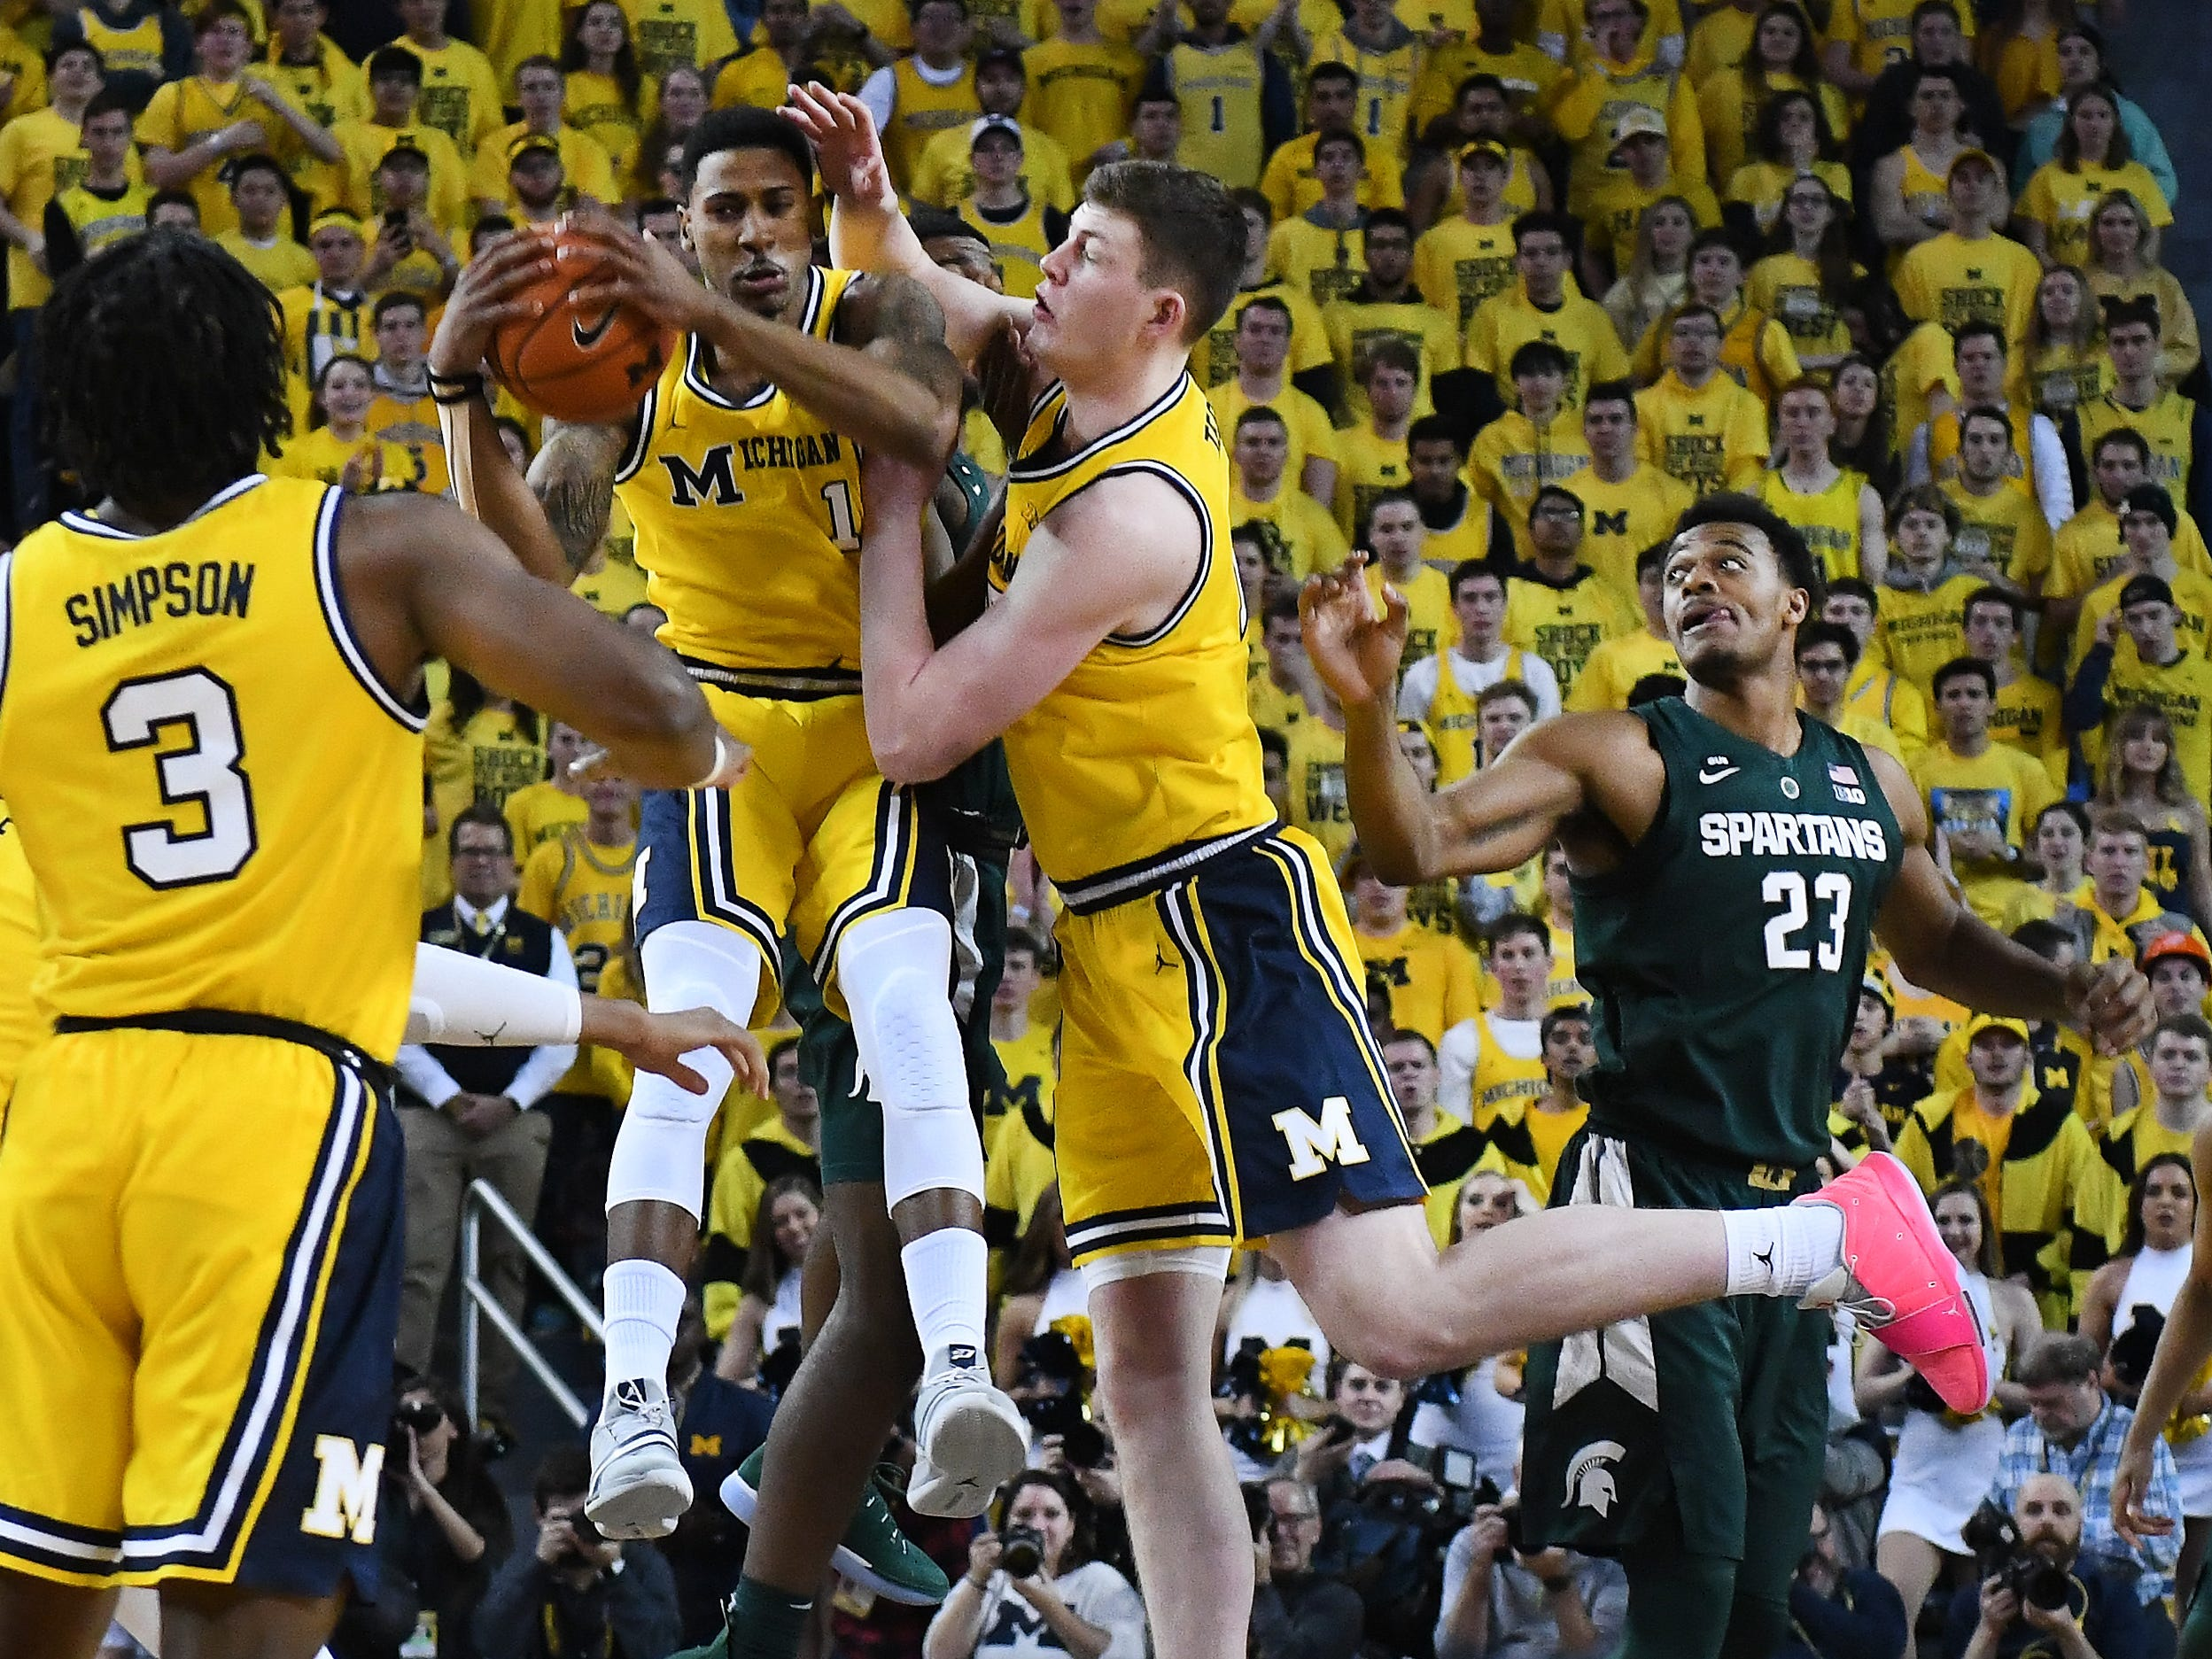 Michigan's Charles Matthews and Jon Teske collide going to the tip off ball at the start of the game.